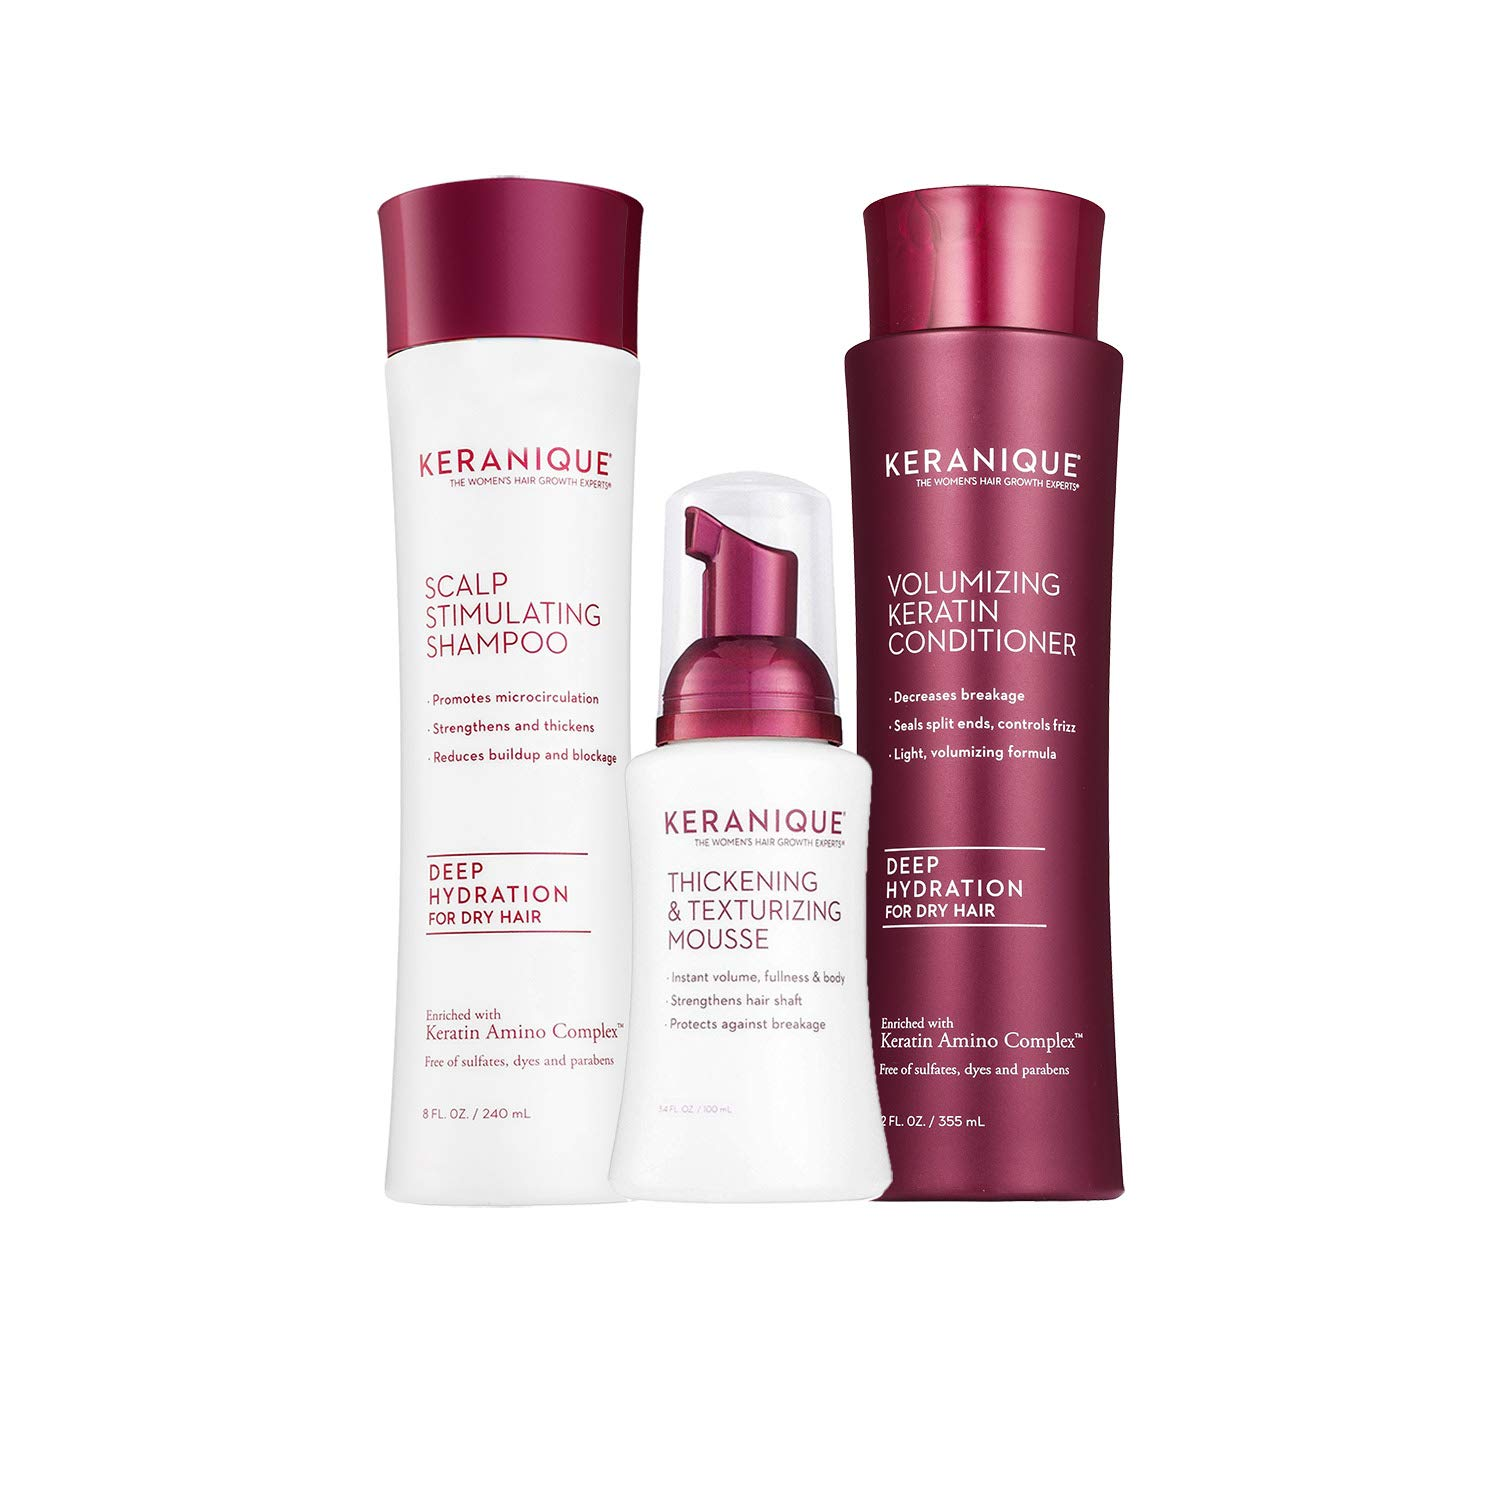 Keranique 60 Day Hair Thickening Kit - Deep Hydration | Shampoo, Conditioner, and Texturizing Mousse | Free of Sulfates, Dyes and Parabens | Improves Hair Texture | Maintains Body and Volume by Keranique